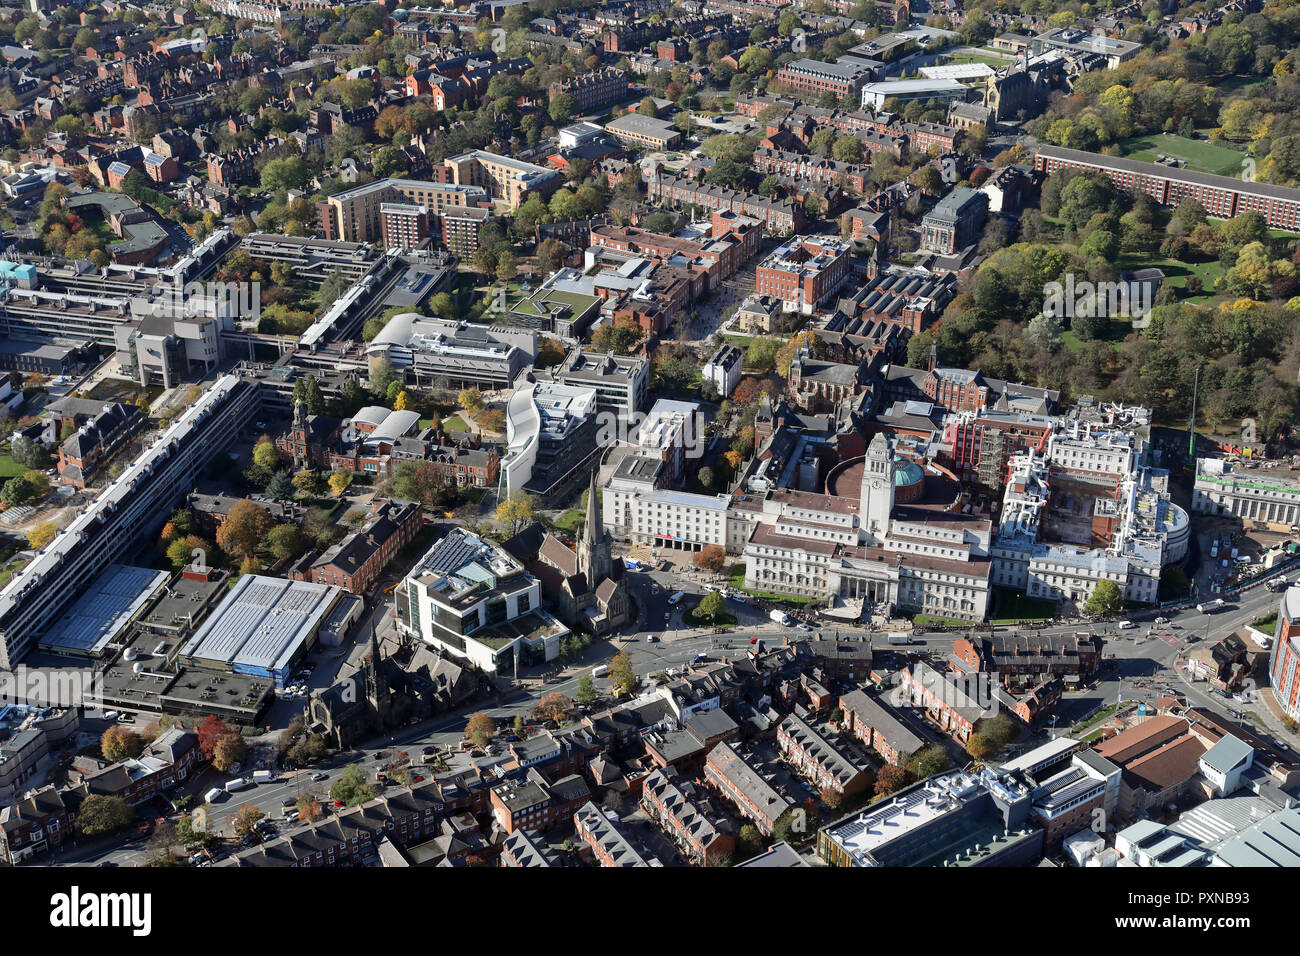 aerial view of The University of Leeds, West Yorkshire, UK - Stock Image